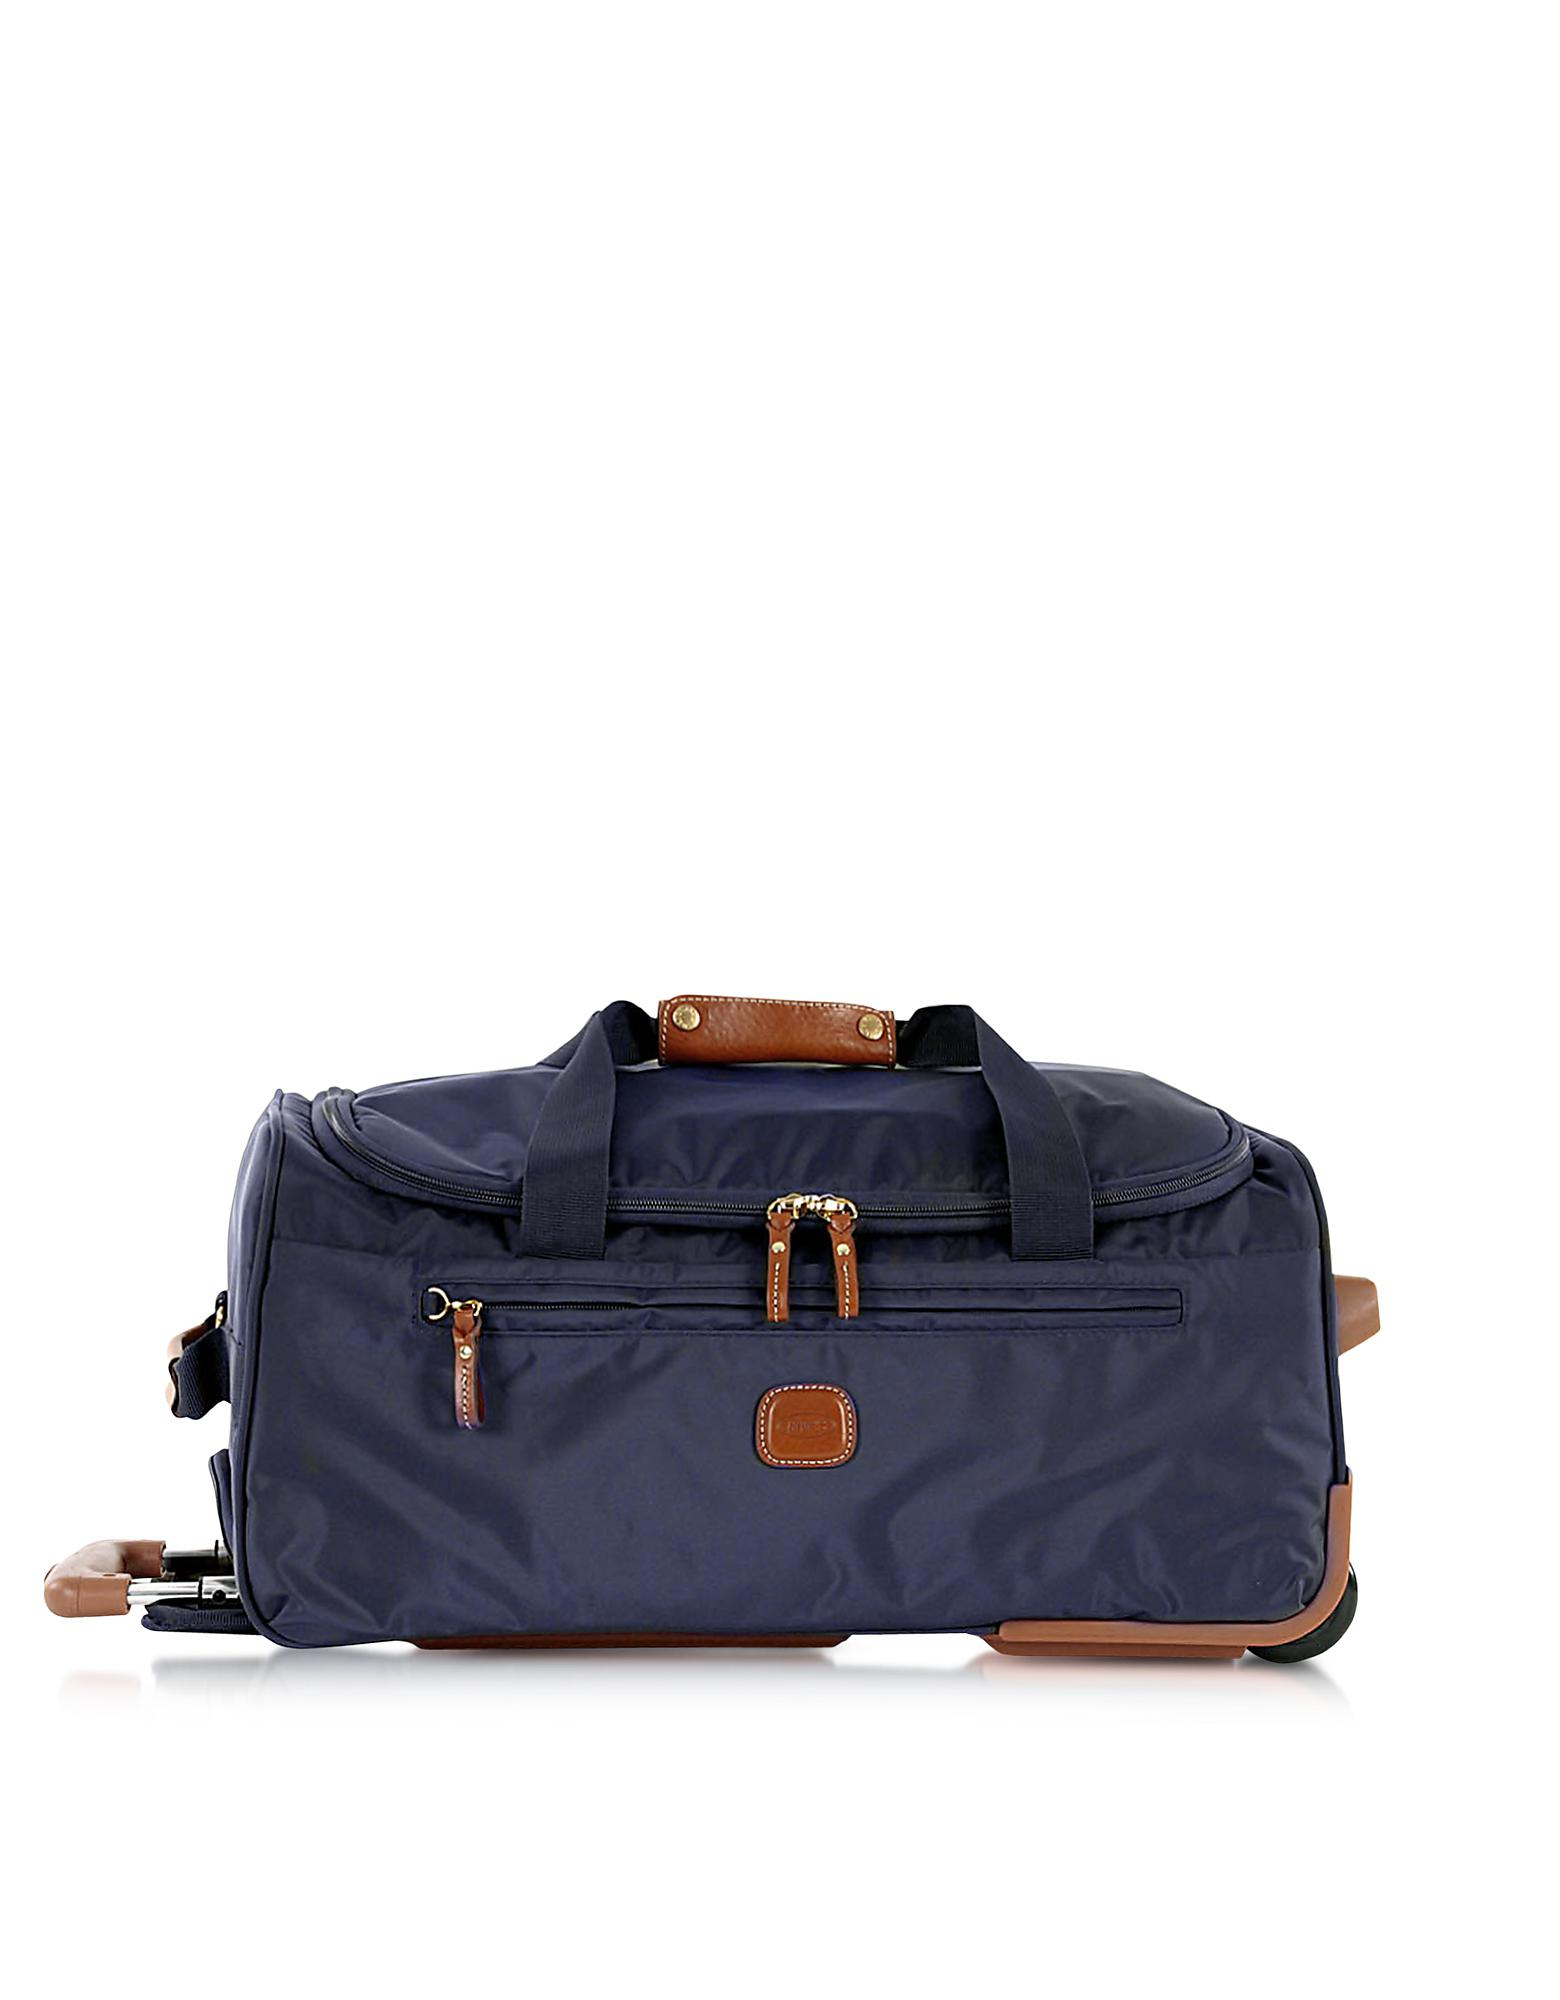 86119a344c64 Bric s X-travel Medium Rolling Duffle Bag in Blue for Men - Lyst